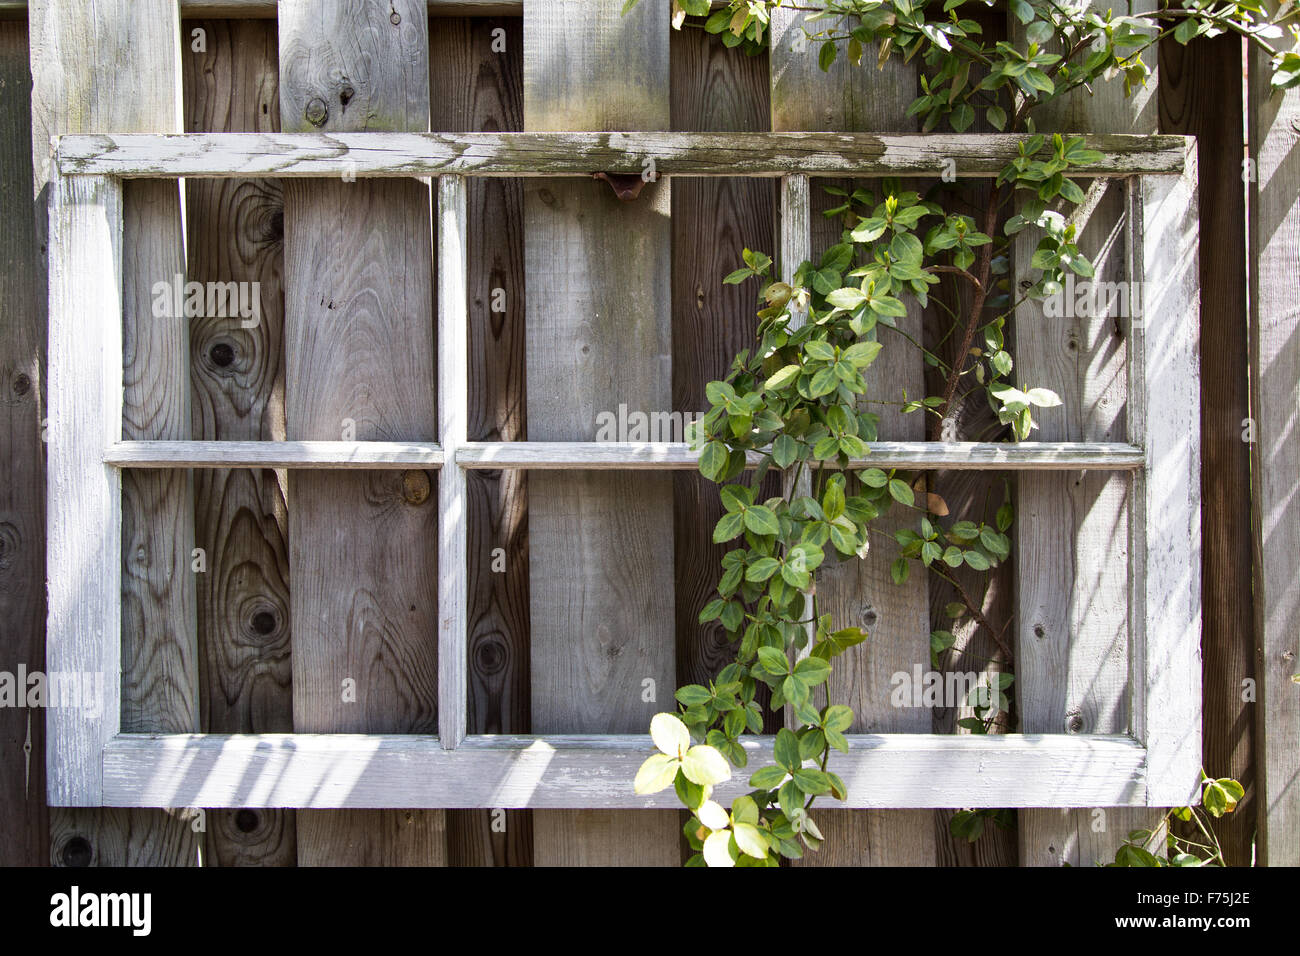 Vintage window frame with flowering vines growing on a wooden fence ...